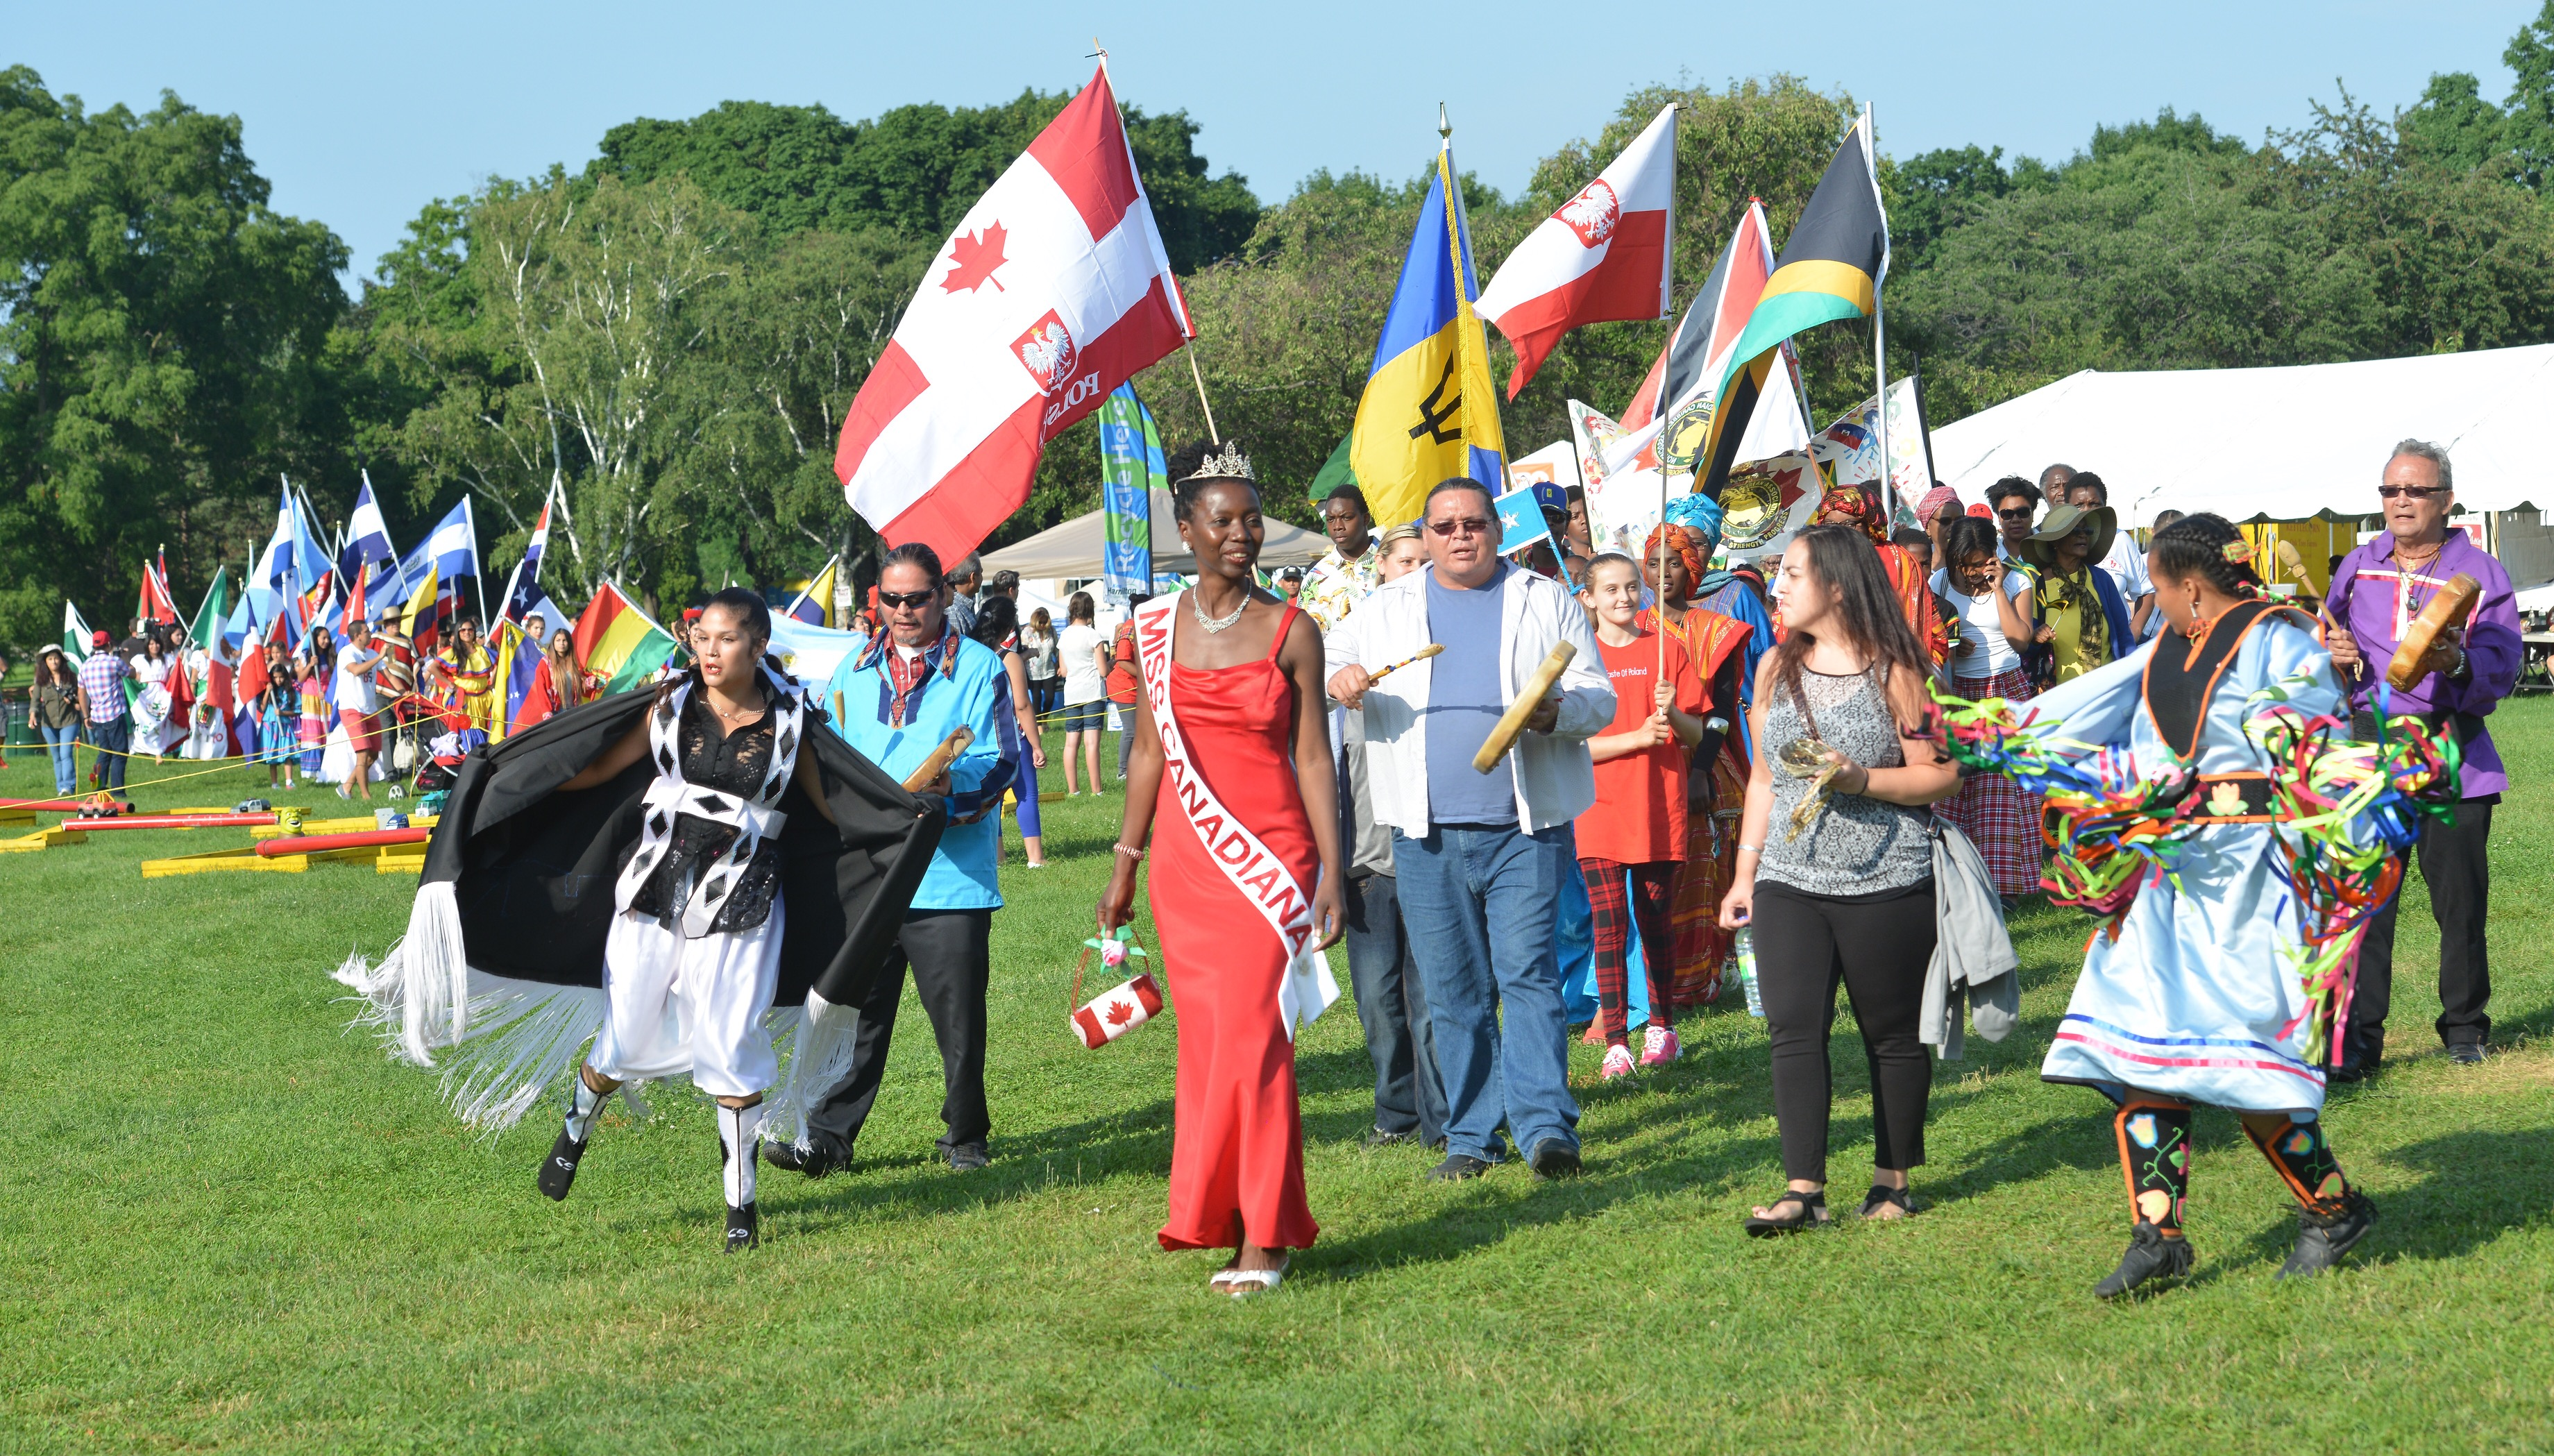 On 2015-07-09,at 6:18 PM Novak, Kaz (KNovak@thespec.com) Subject: Cultural Parade      Hamilton  , Ontario, July 9, 2015  Miss Canadiana Camille Turner  leads the Cultural  Parade as Its  Your Festival  kicks off at Gage Park Photo  by Kaz Novak, The Hamilton Spectator      Sent from my iPhone